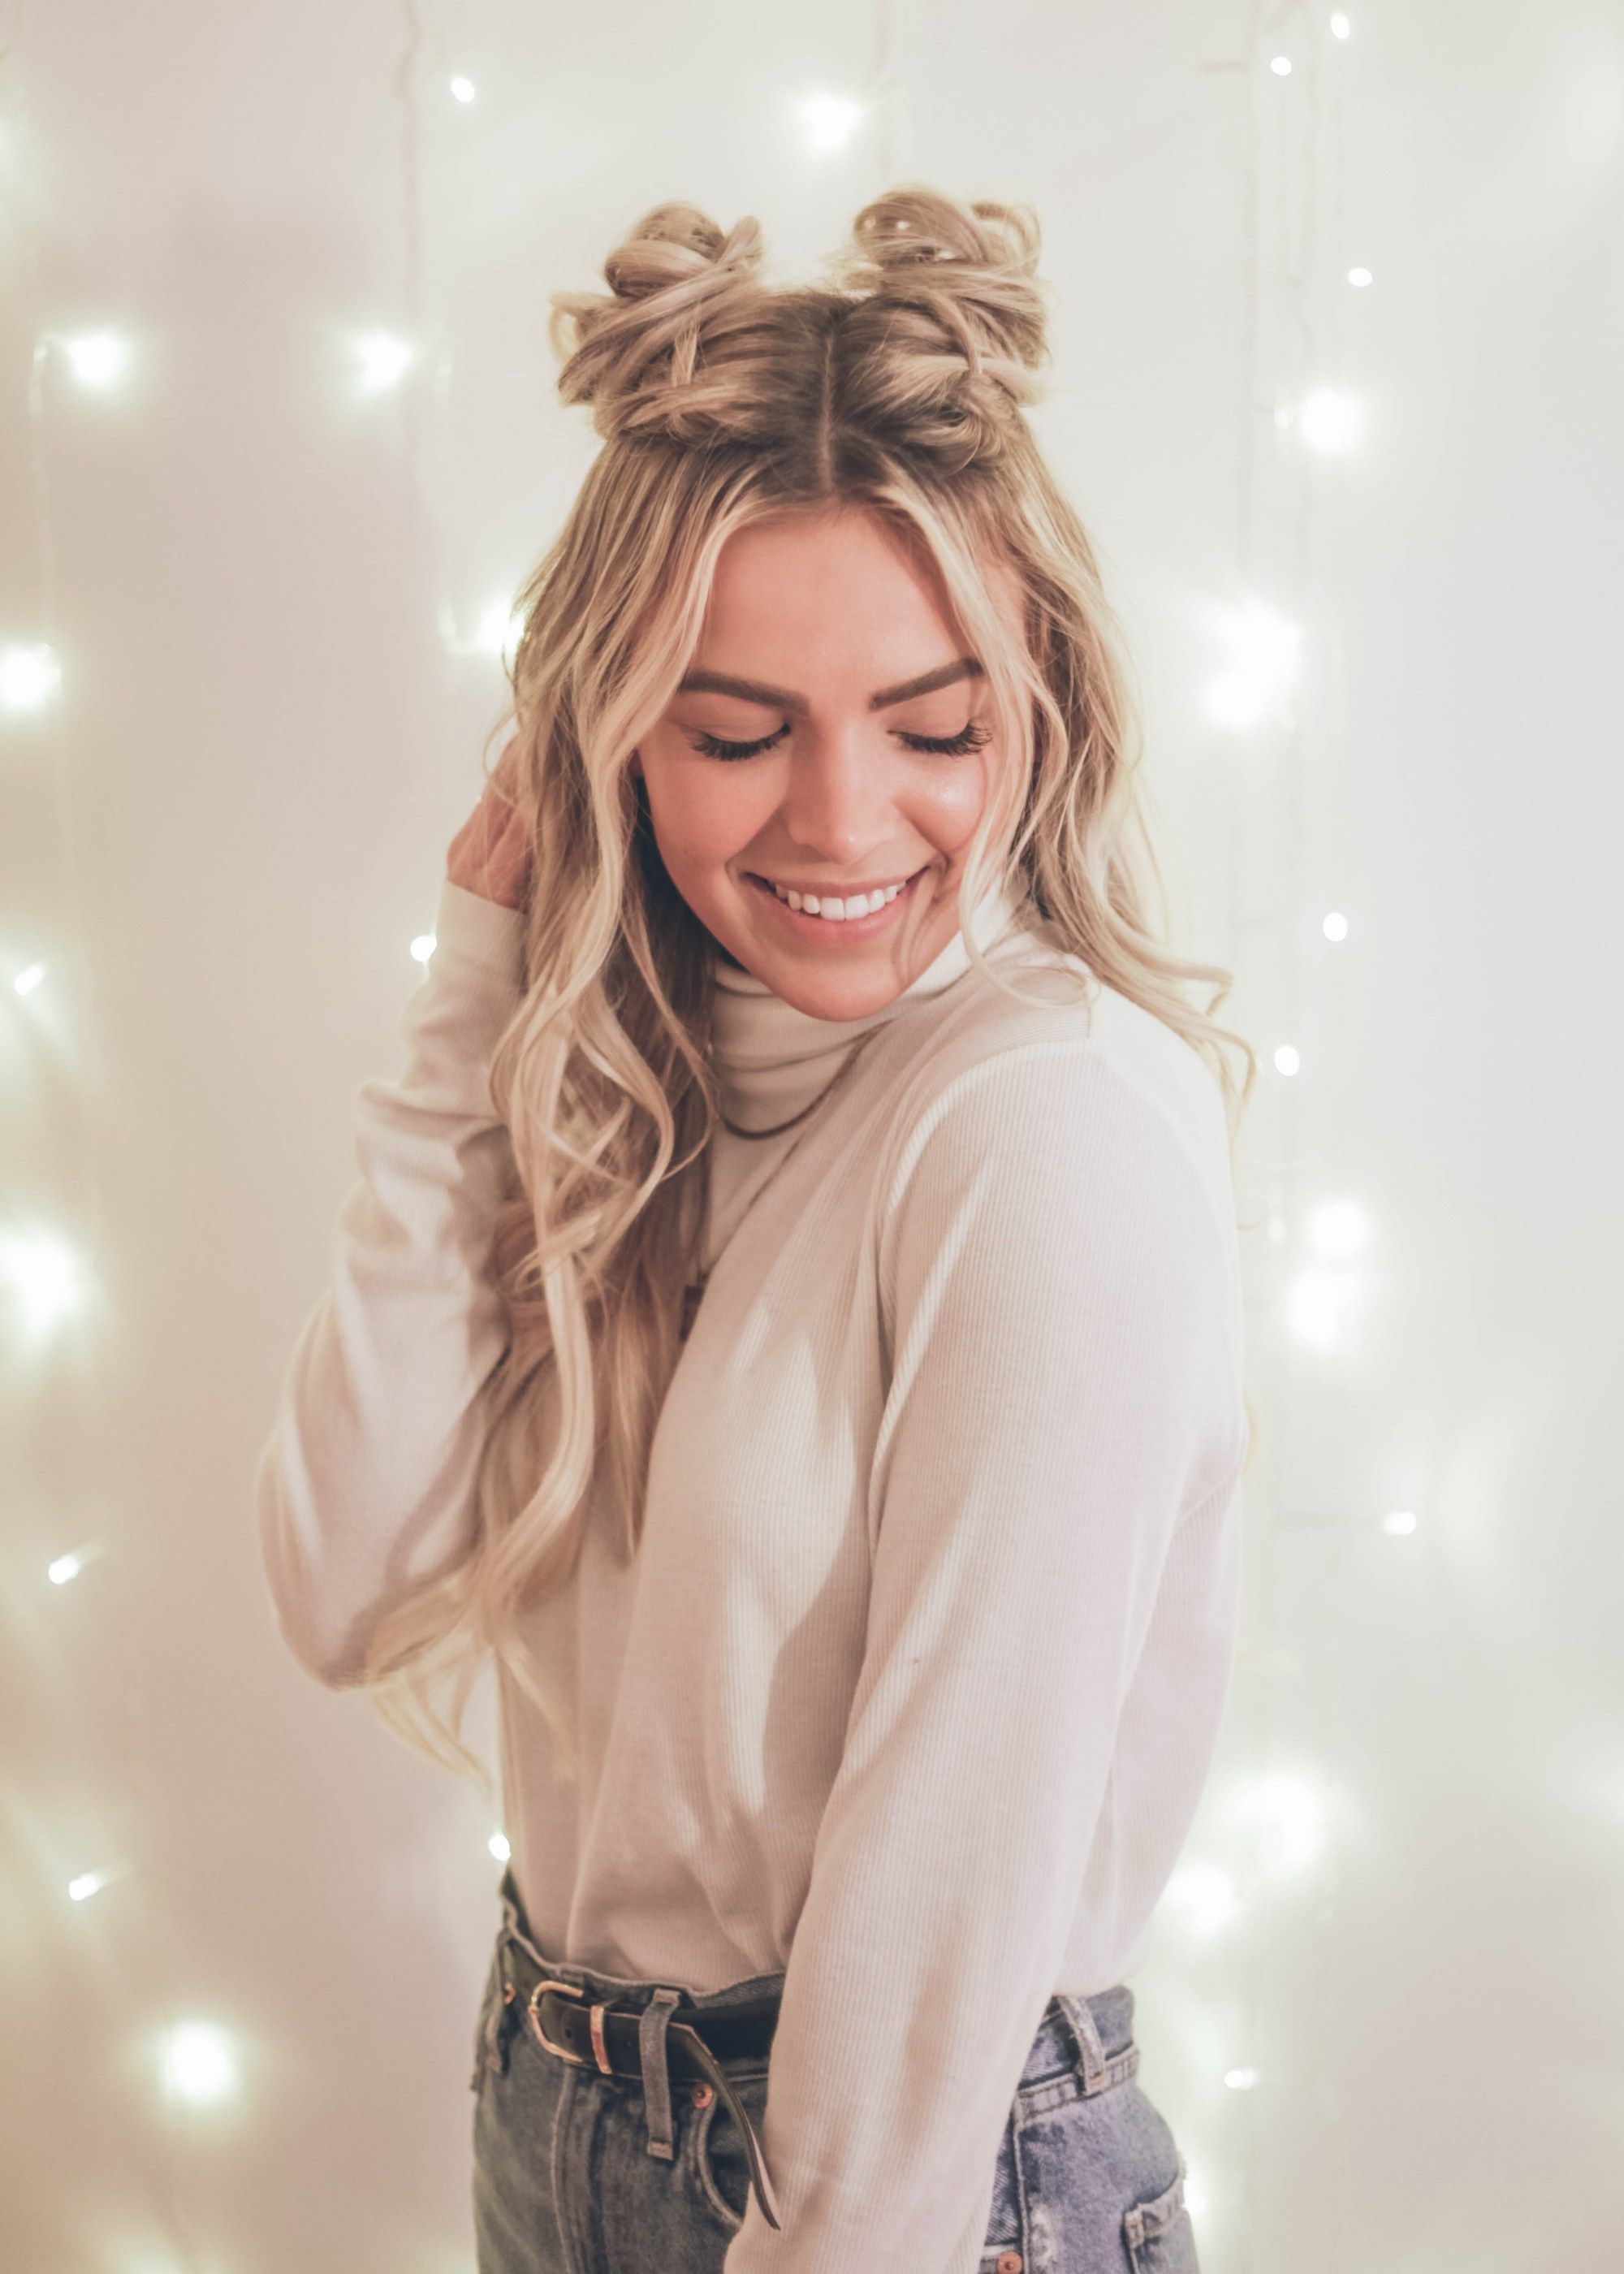 2.Easy space buns cure hairstyle